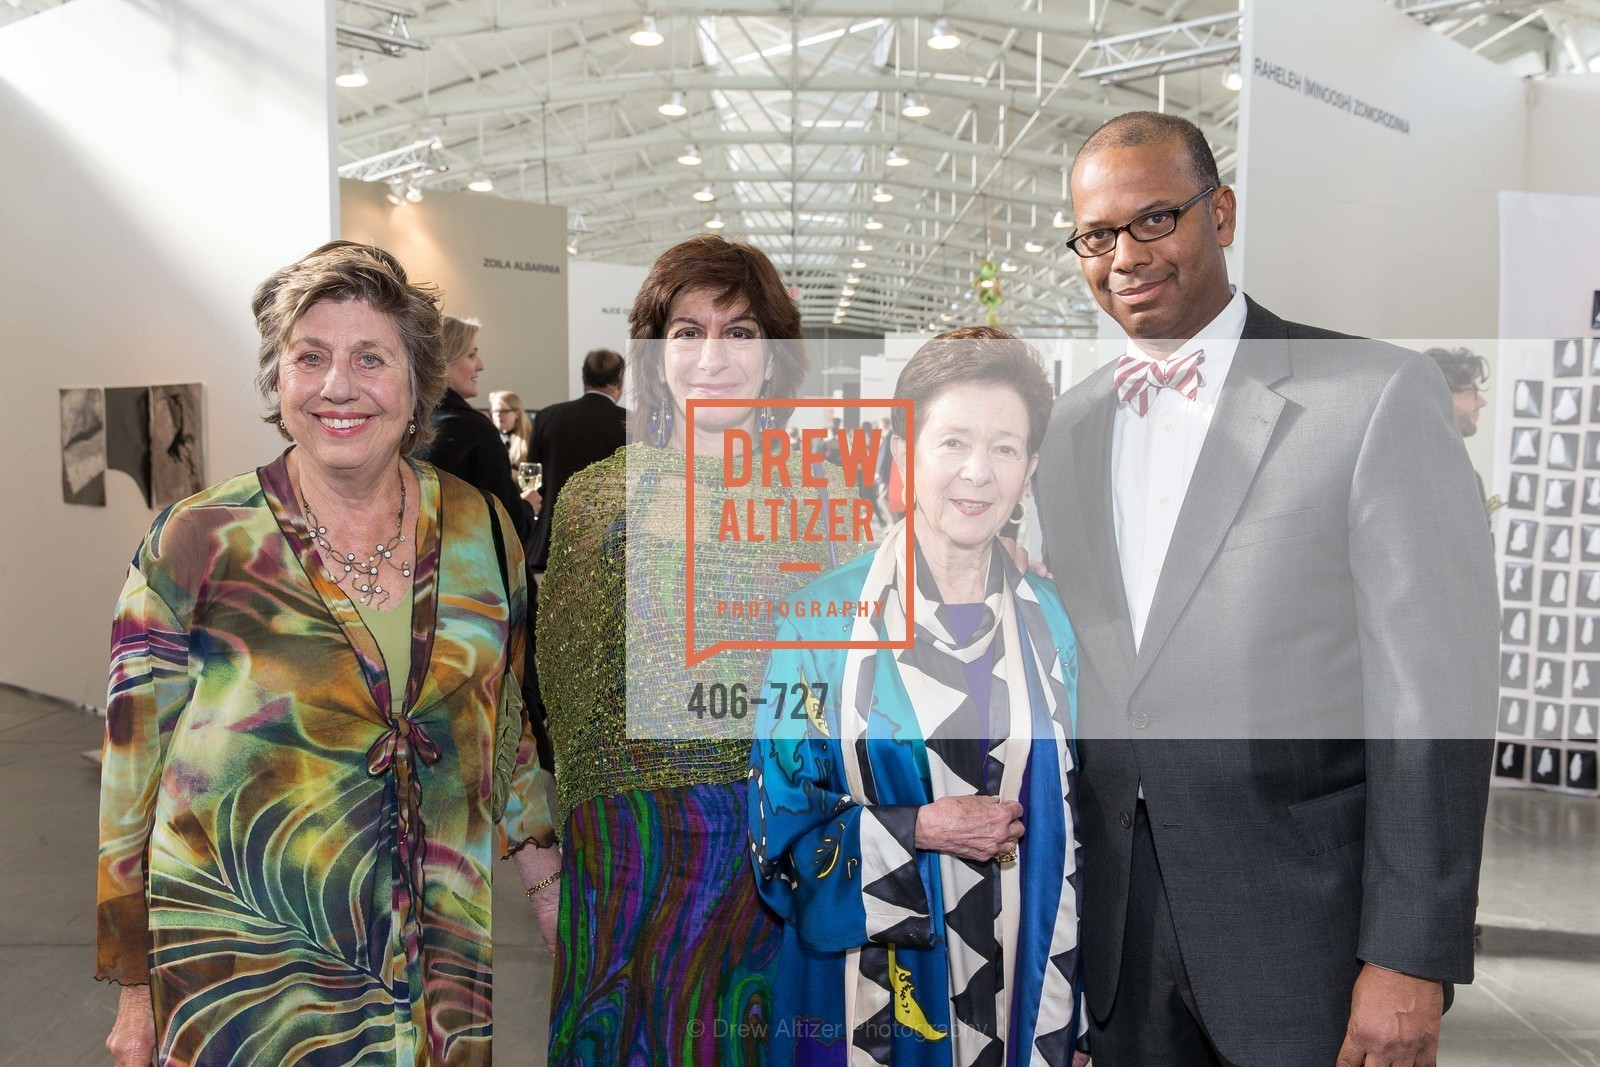 Eleanor Chroman, Cissie Swig, Scott Sillers, SAN FRANCISCO ART INSTITUTE Gala Honoring Art Visionary and Advocate ROSELYNE CHROMAN SWIG, US, May 13th, 2015,Drew Altizer, Drew Altizer Photography, full-service agency, private events, San Francisco photographer, photographer california